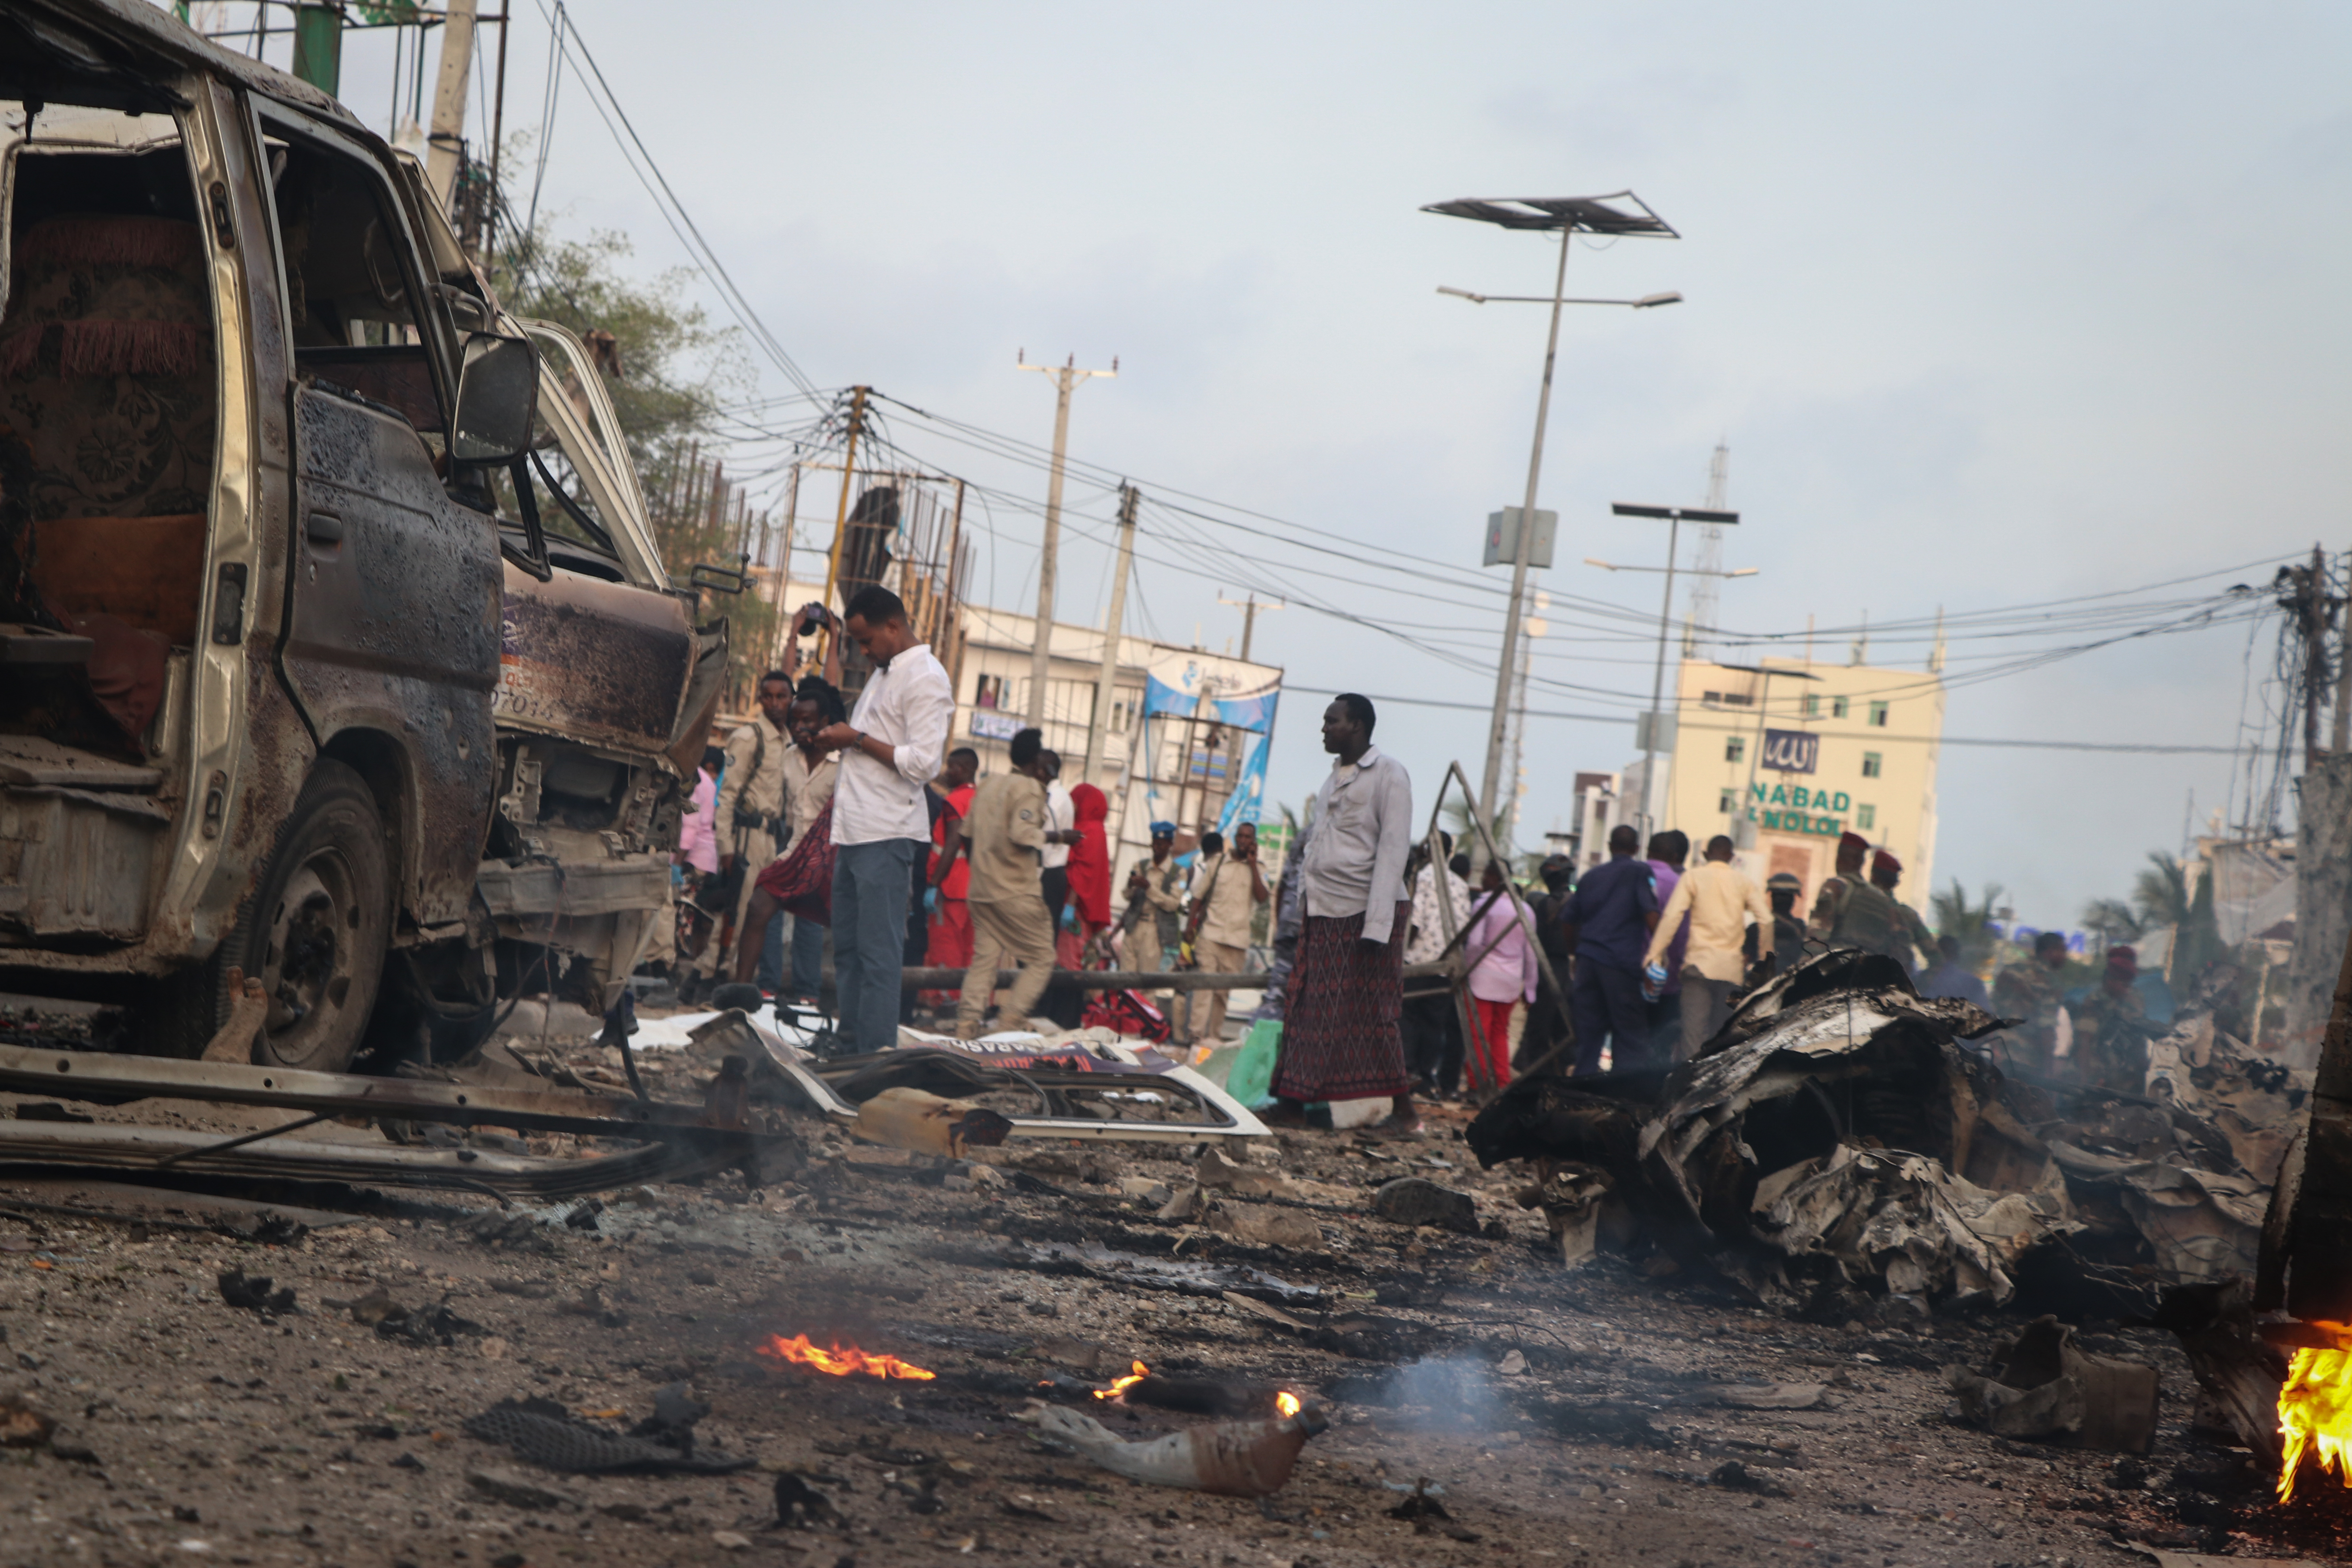 People gather at the scene of twin car bombs that exploded within moments of each other in the Somali capital Mogadishu, Nov. 9, 2018, near a popular Sahafi hotel in the Somali capital Mogadishu.